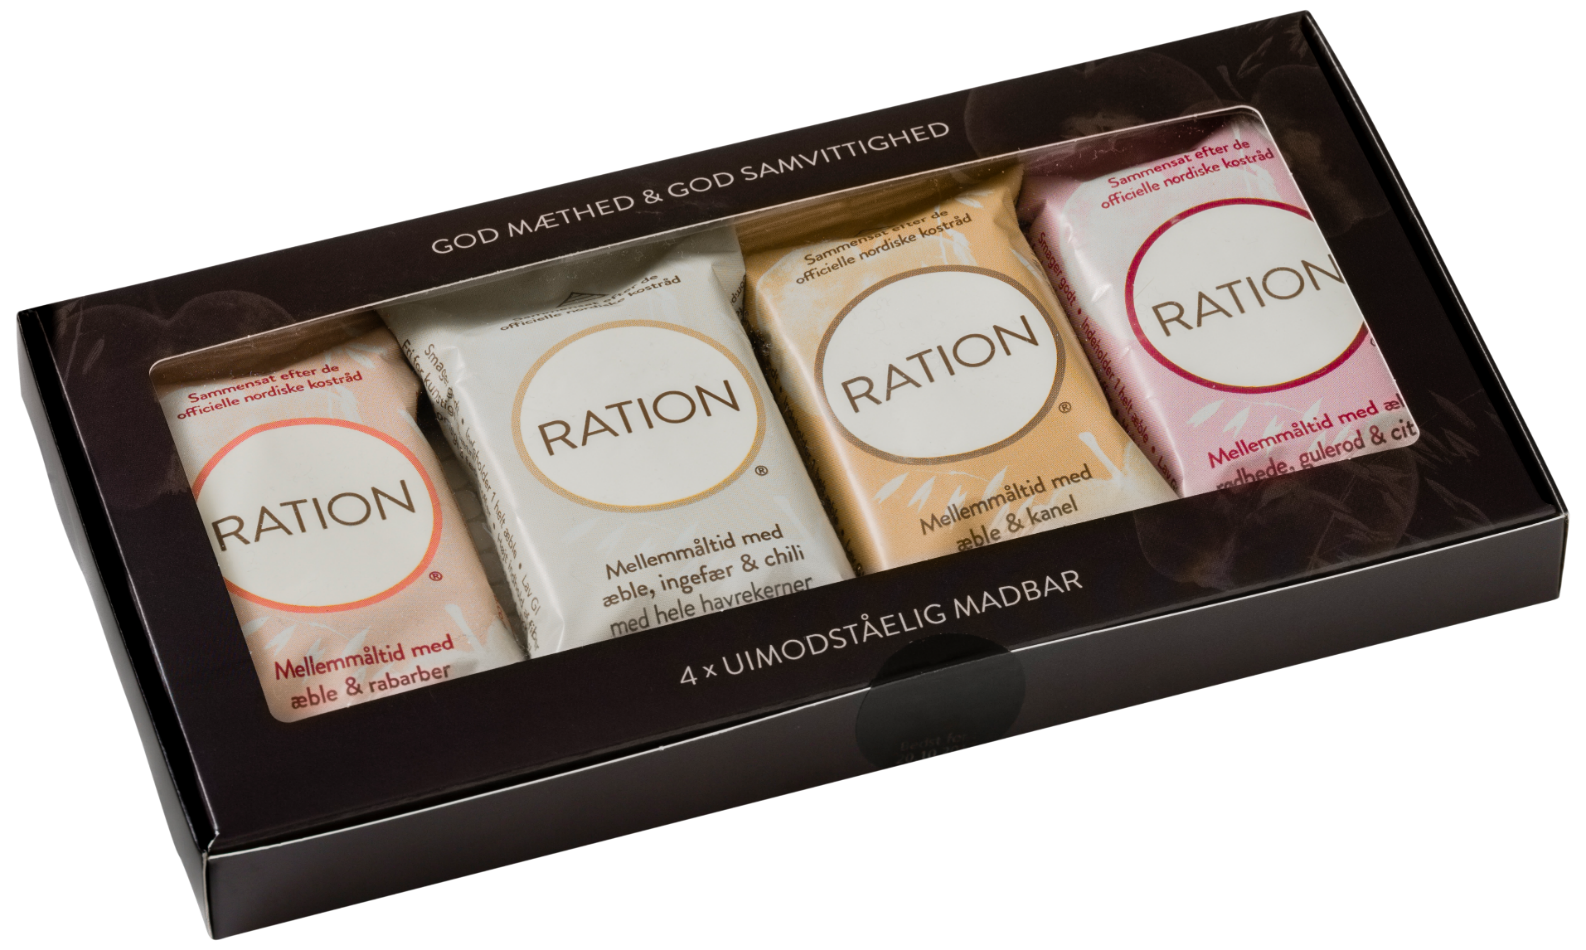 Ration tasting01-Edit-transp